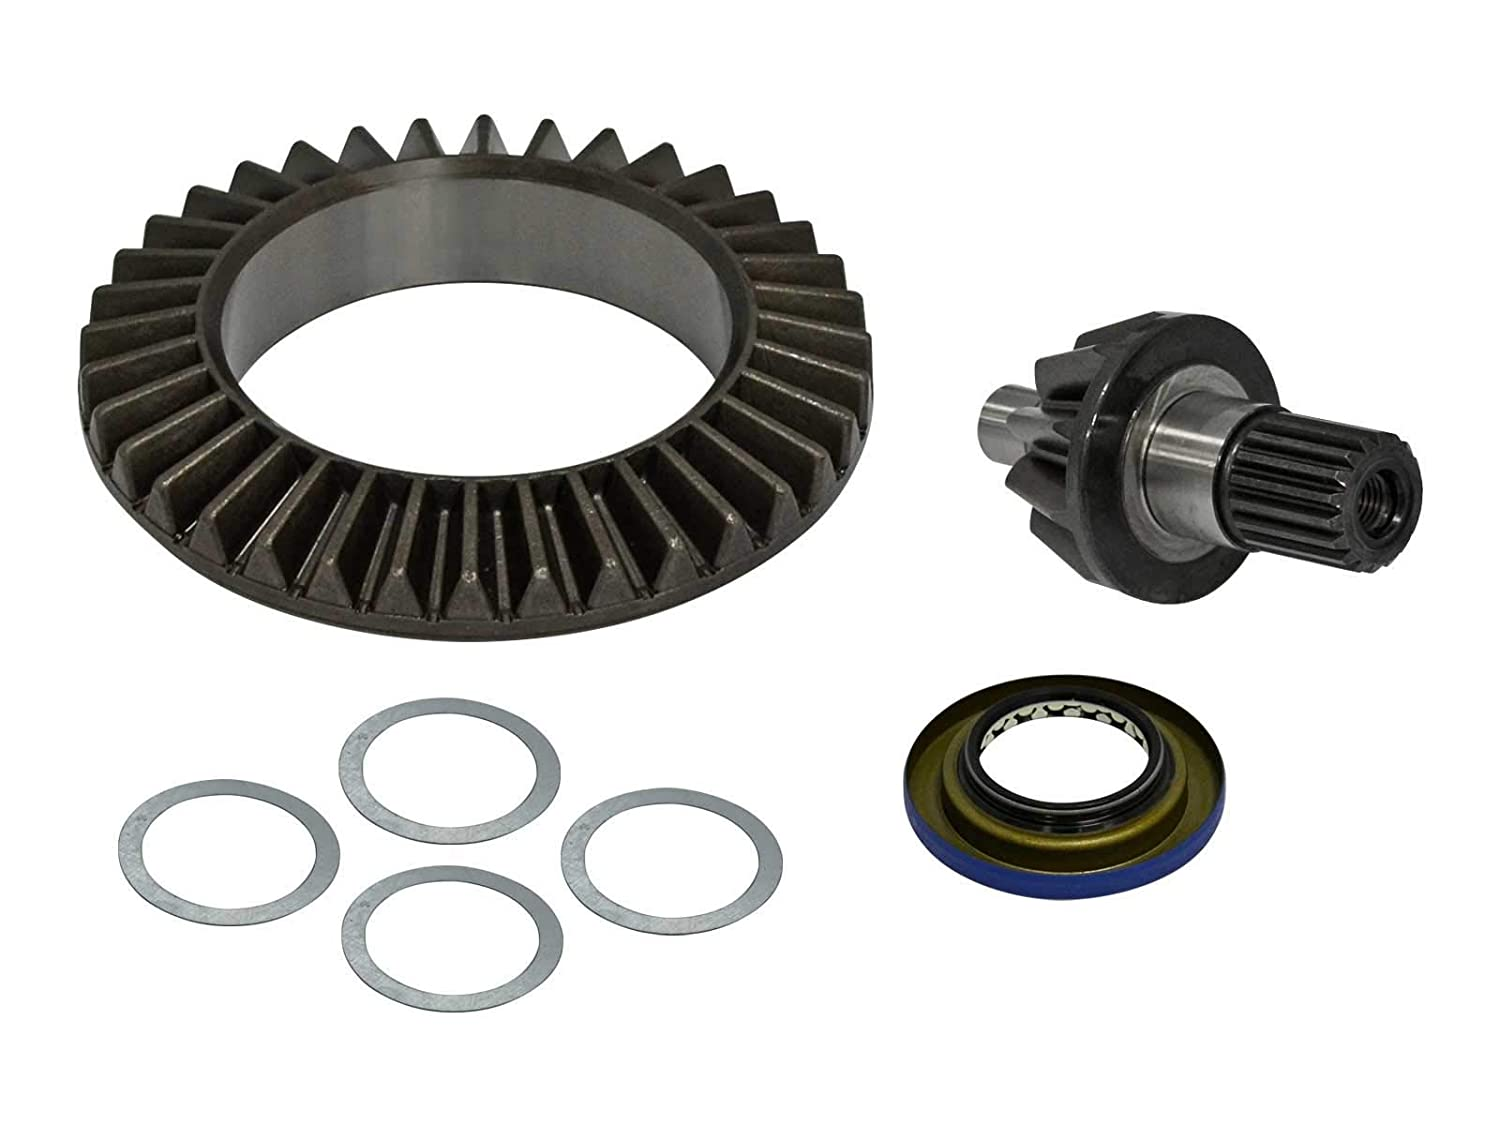 SEE FITMENT Replaces OE # 705401612 SuperATV Heavy Duty Ring and Pinion Gear Set for Can-Am Renegade